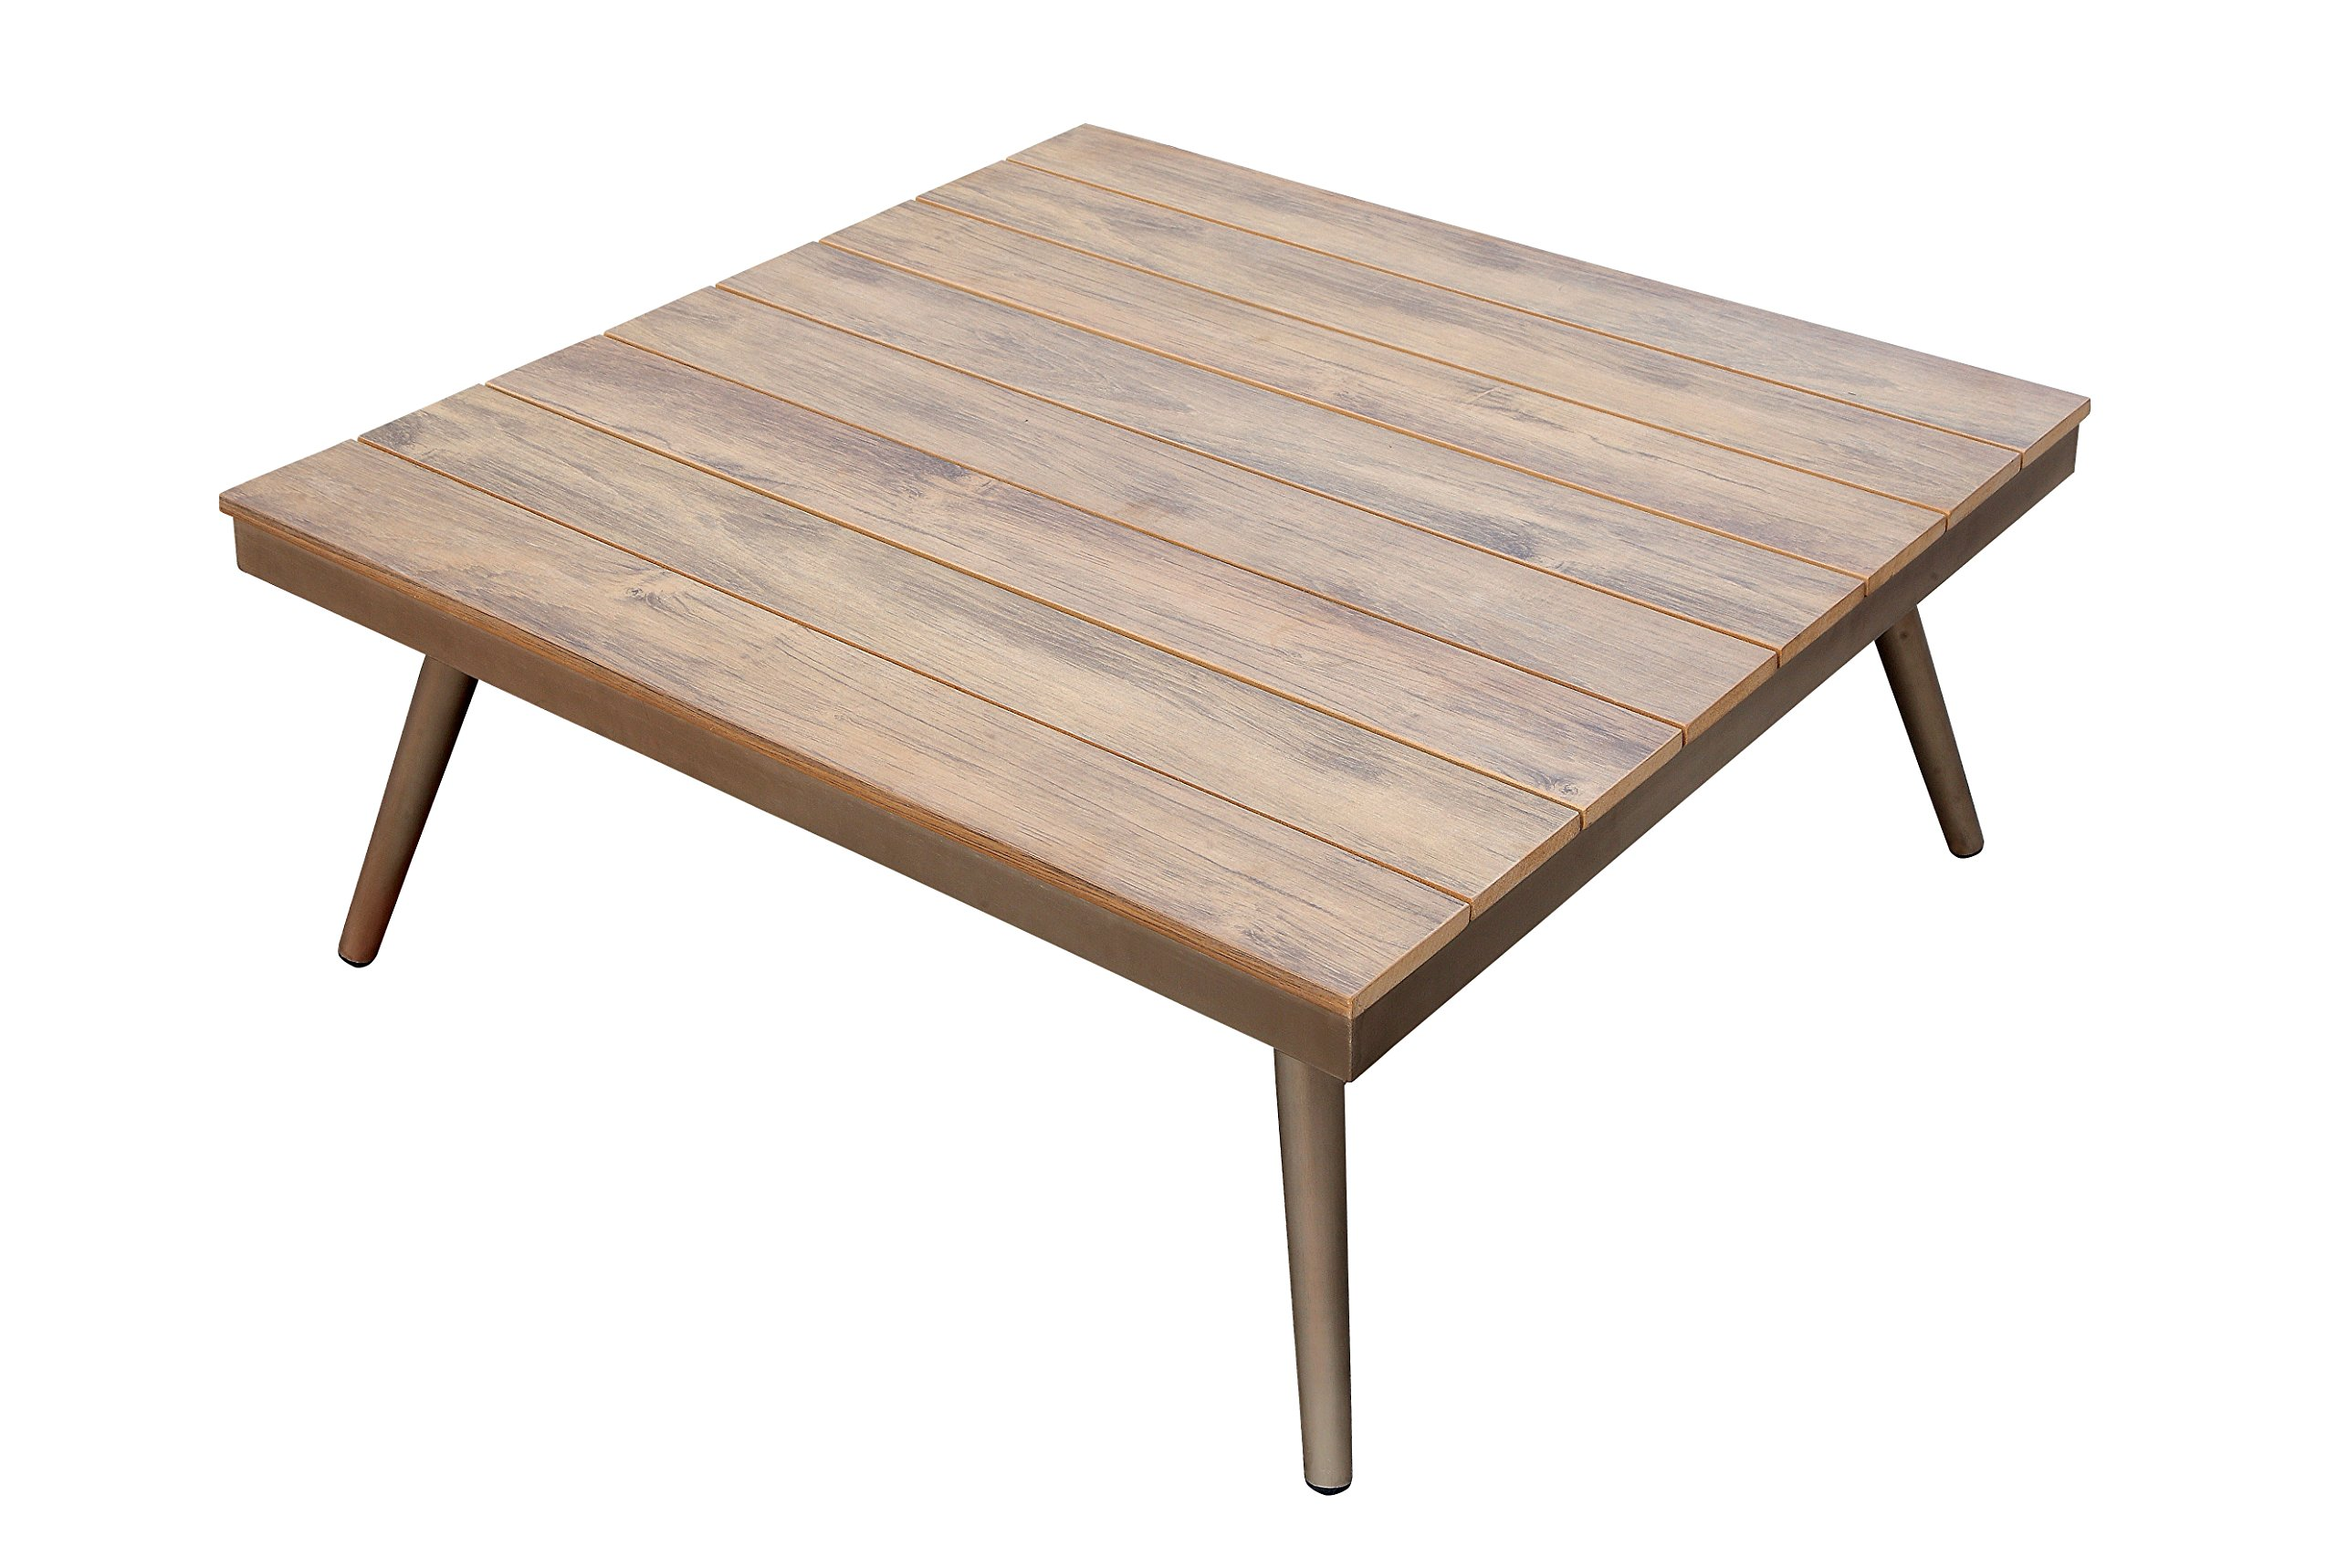 24/7 Shop at Home 247SHOPATHOME IDF-OS2582-T Mulberry Outdoor Coffee Table, Brushed Champagne - Contemporary style Oak faux wood top with plank-style design Sturdy aluminum frame in a chic Brushed Champagne finish - patio-tables, patio-furniture, patio - 81EyVePmcRL -